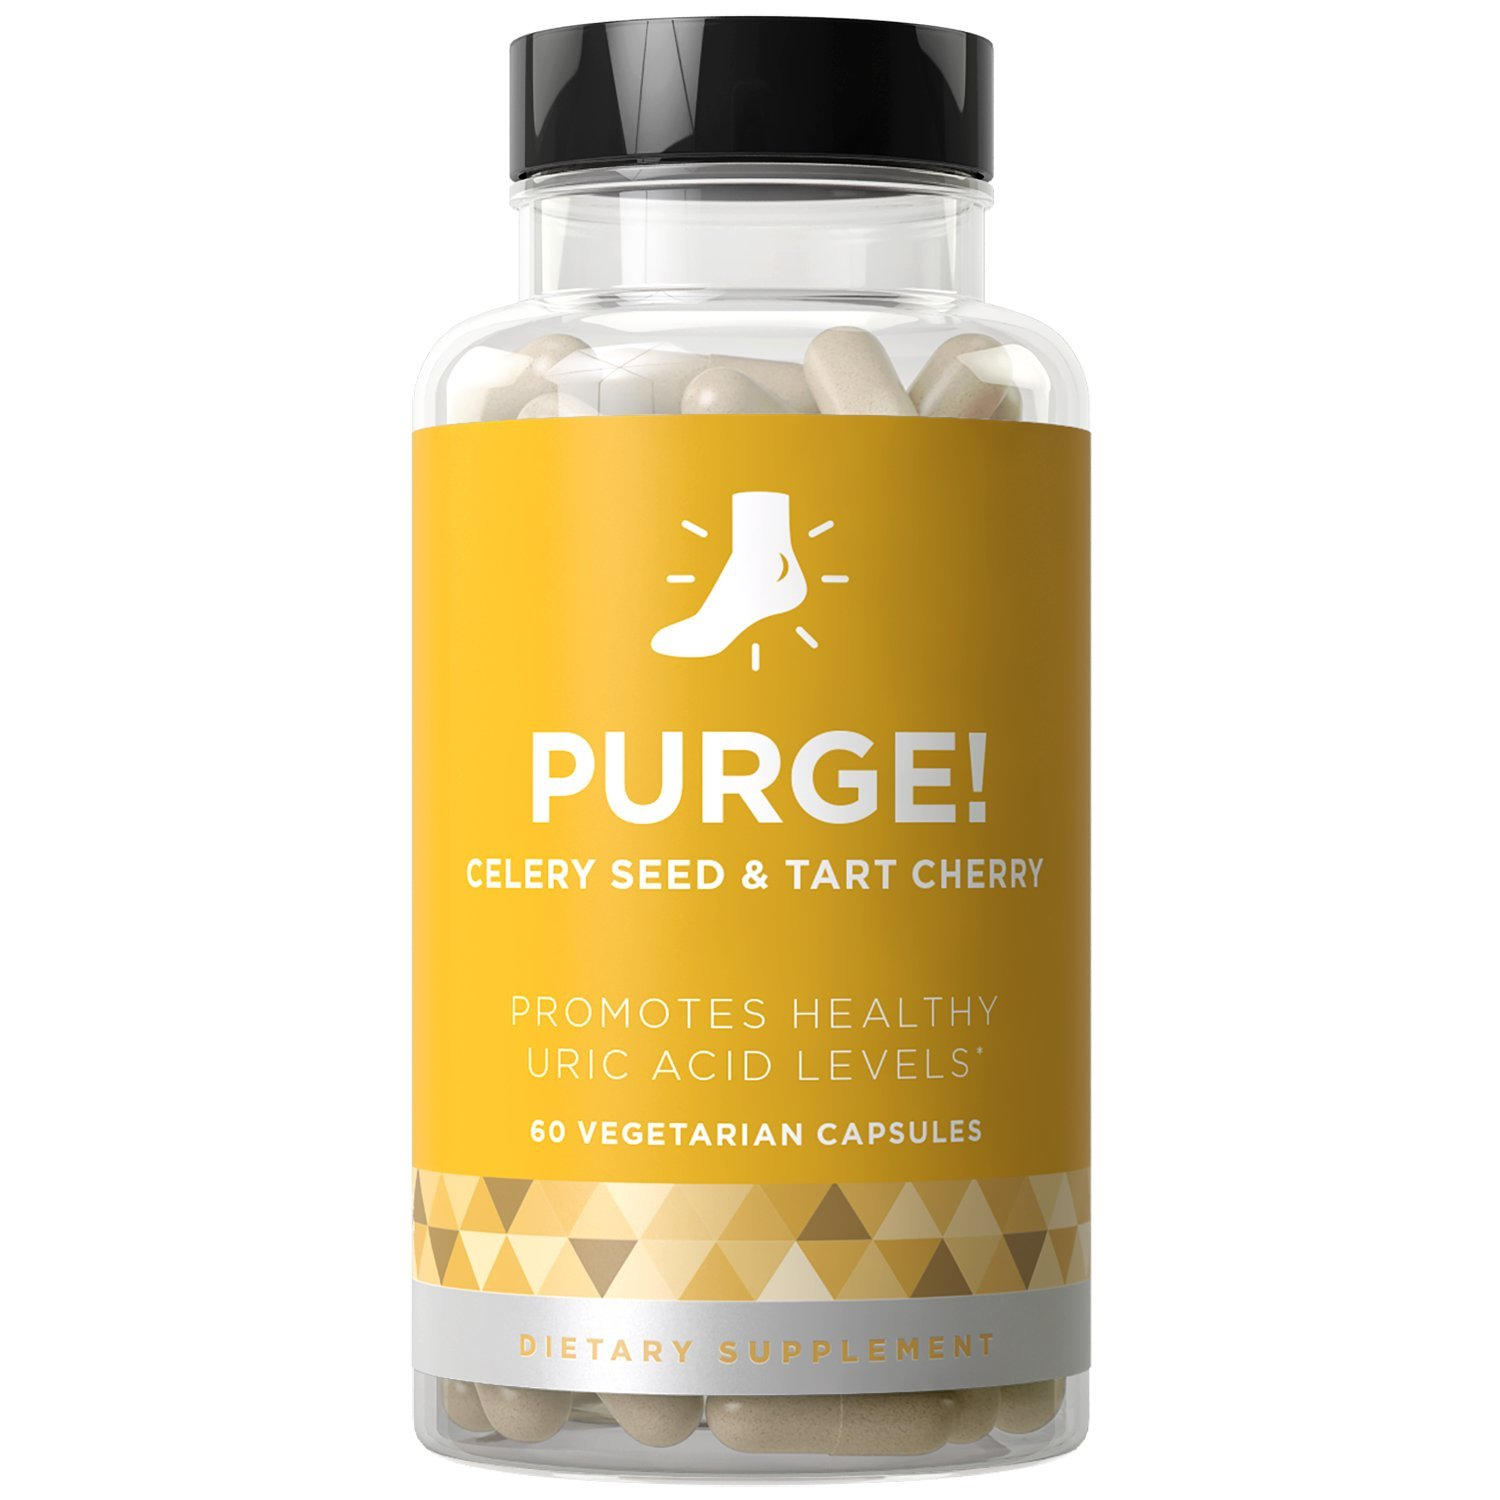 PURGE! Uric Acid Cleanse & Healthy Joint Support - Fast-acting Potency, Strong Flexibility, Lasting Mobility, Inflammation Protection - Celery Seed & Tart Cherry - 60 Vegetarian Soft Capsules